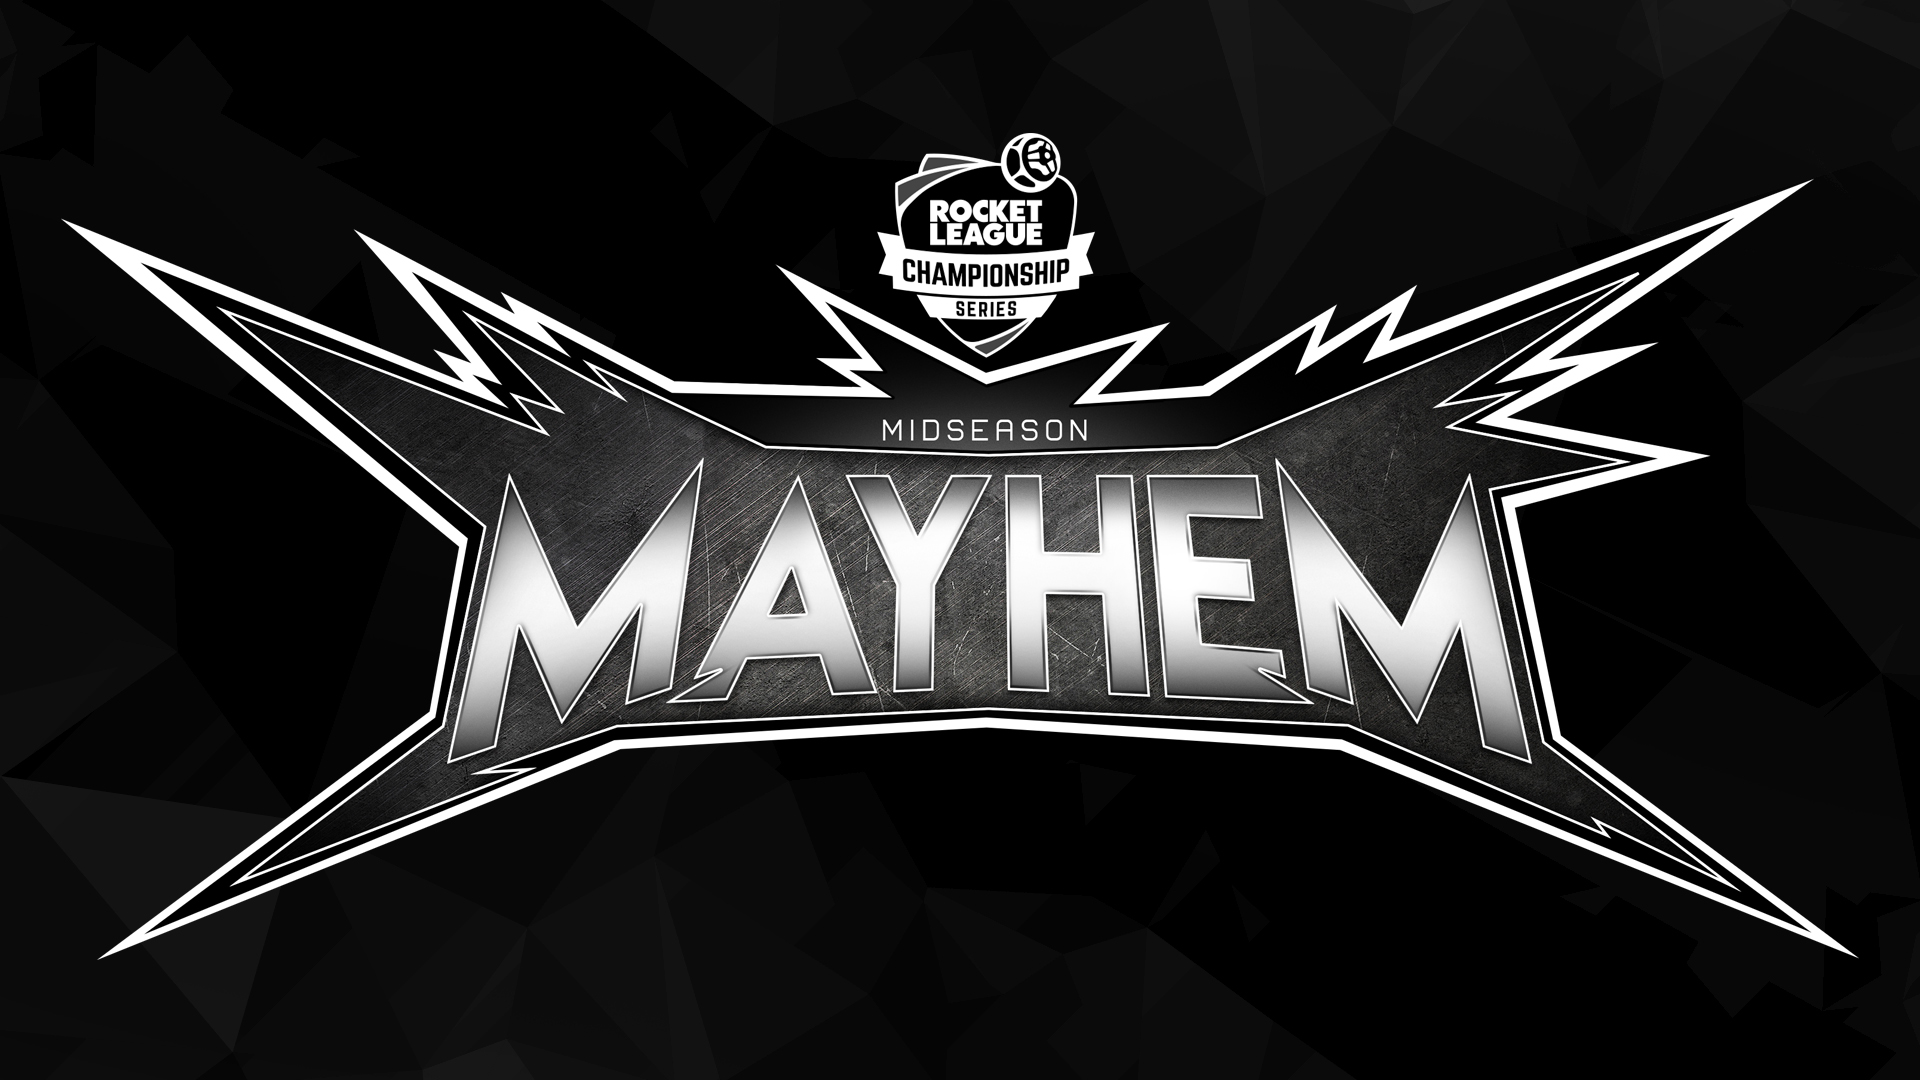 https://9fd701750515aa302b71-c1a7f8f00a88487de8d57334009b2f7d.ssl.cf2.rackcdn.com/or-midseason-mayhem-announcement-graphic.jpg